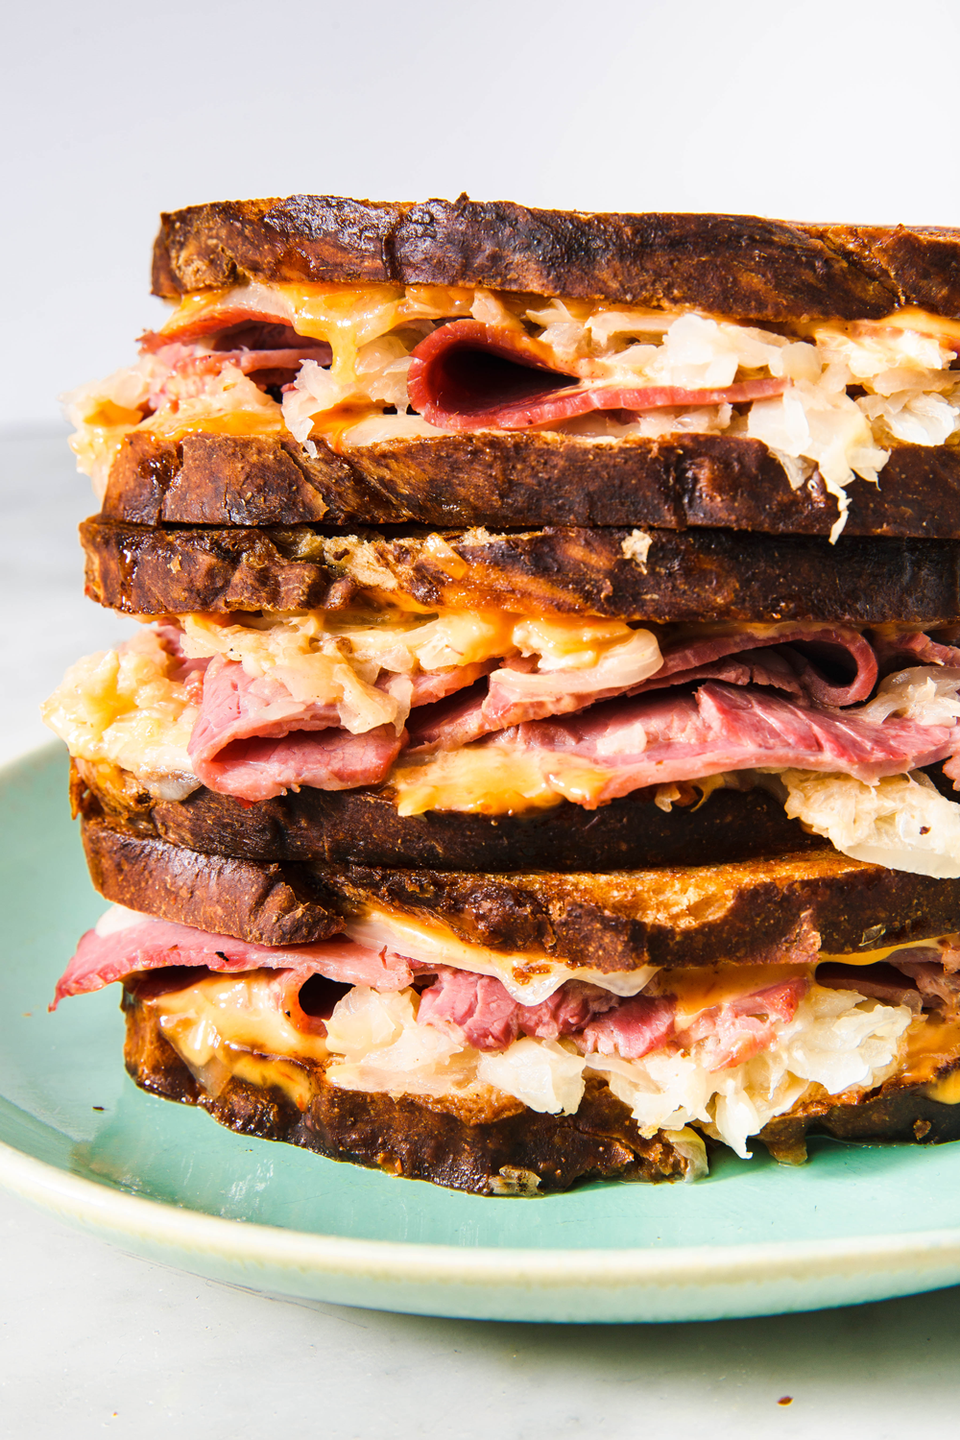 "<p>A good Reuben should be loaded and this one definitely is.</p><p>Get the recipe from <a href=""https://www.delish.com/cooking/recipe-ideas/a23872214/classic-reuben-sandwich-recipe/"" rel=""nofollow noopener"" target=""_blank"" data-ylk=""slk:Delish"" class=""link rapid-noclick-resp"">Delish</a>. </p>"